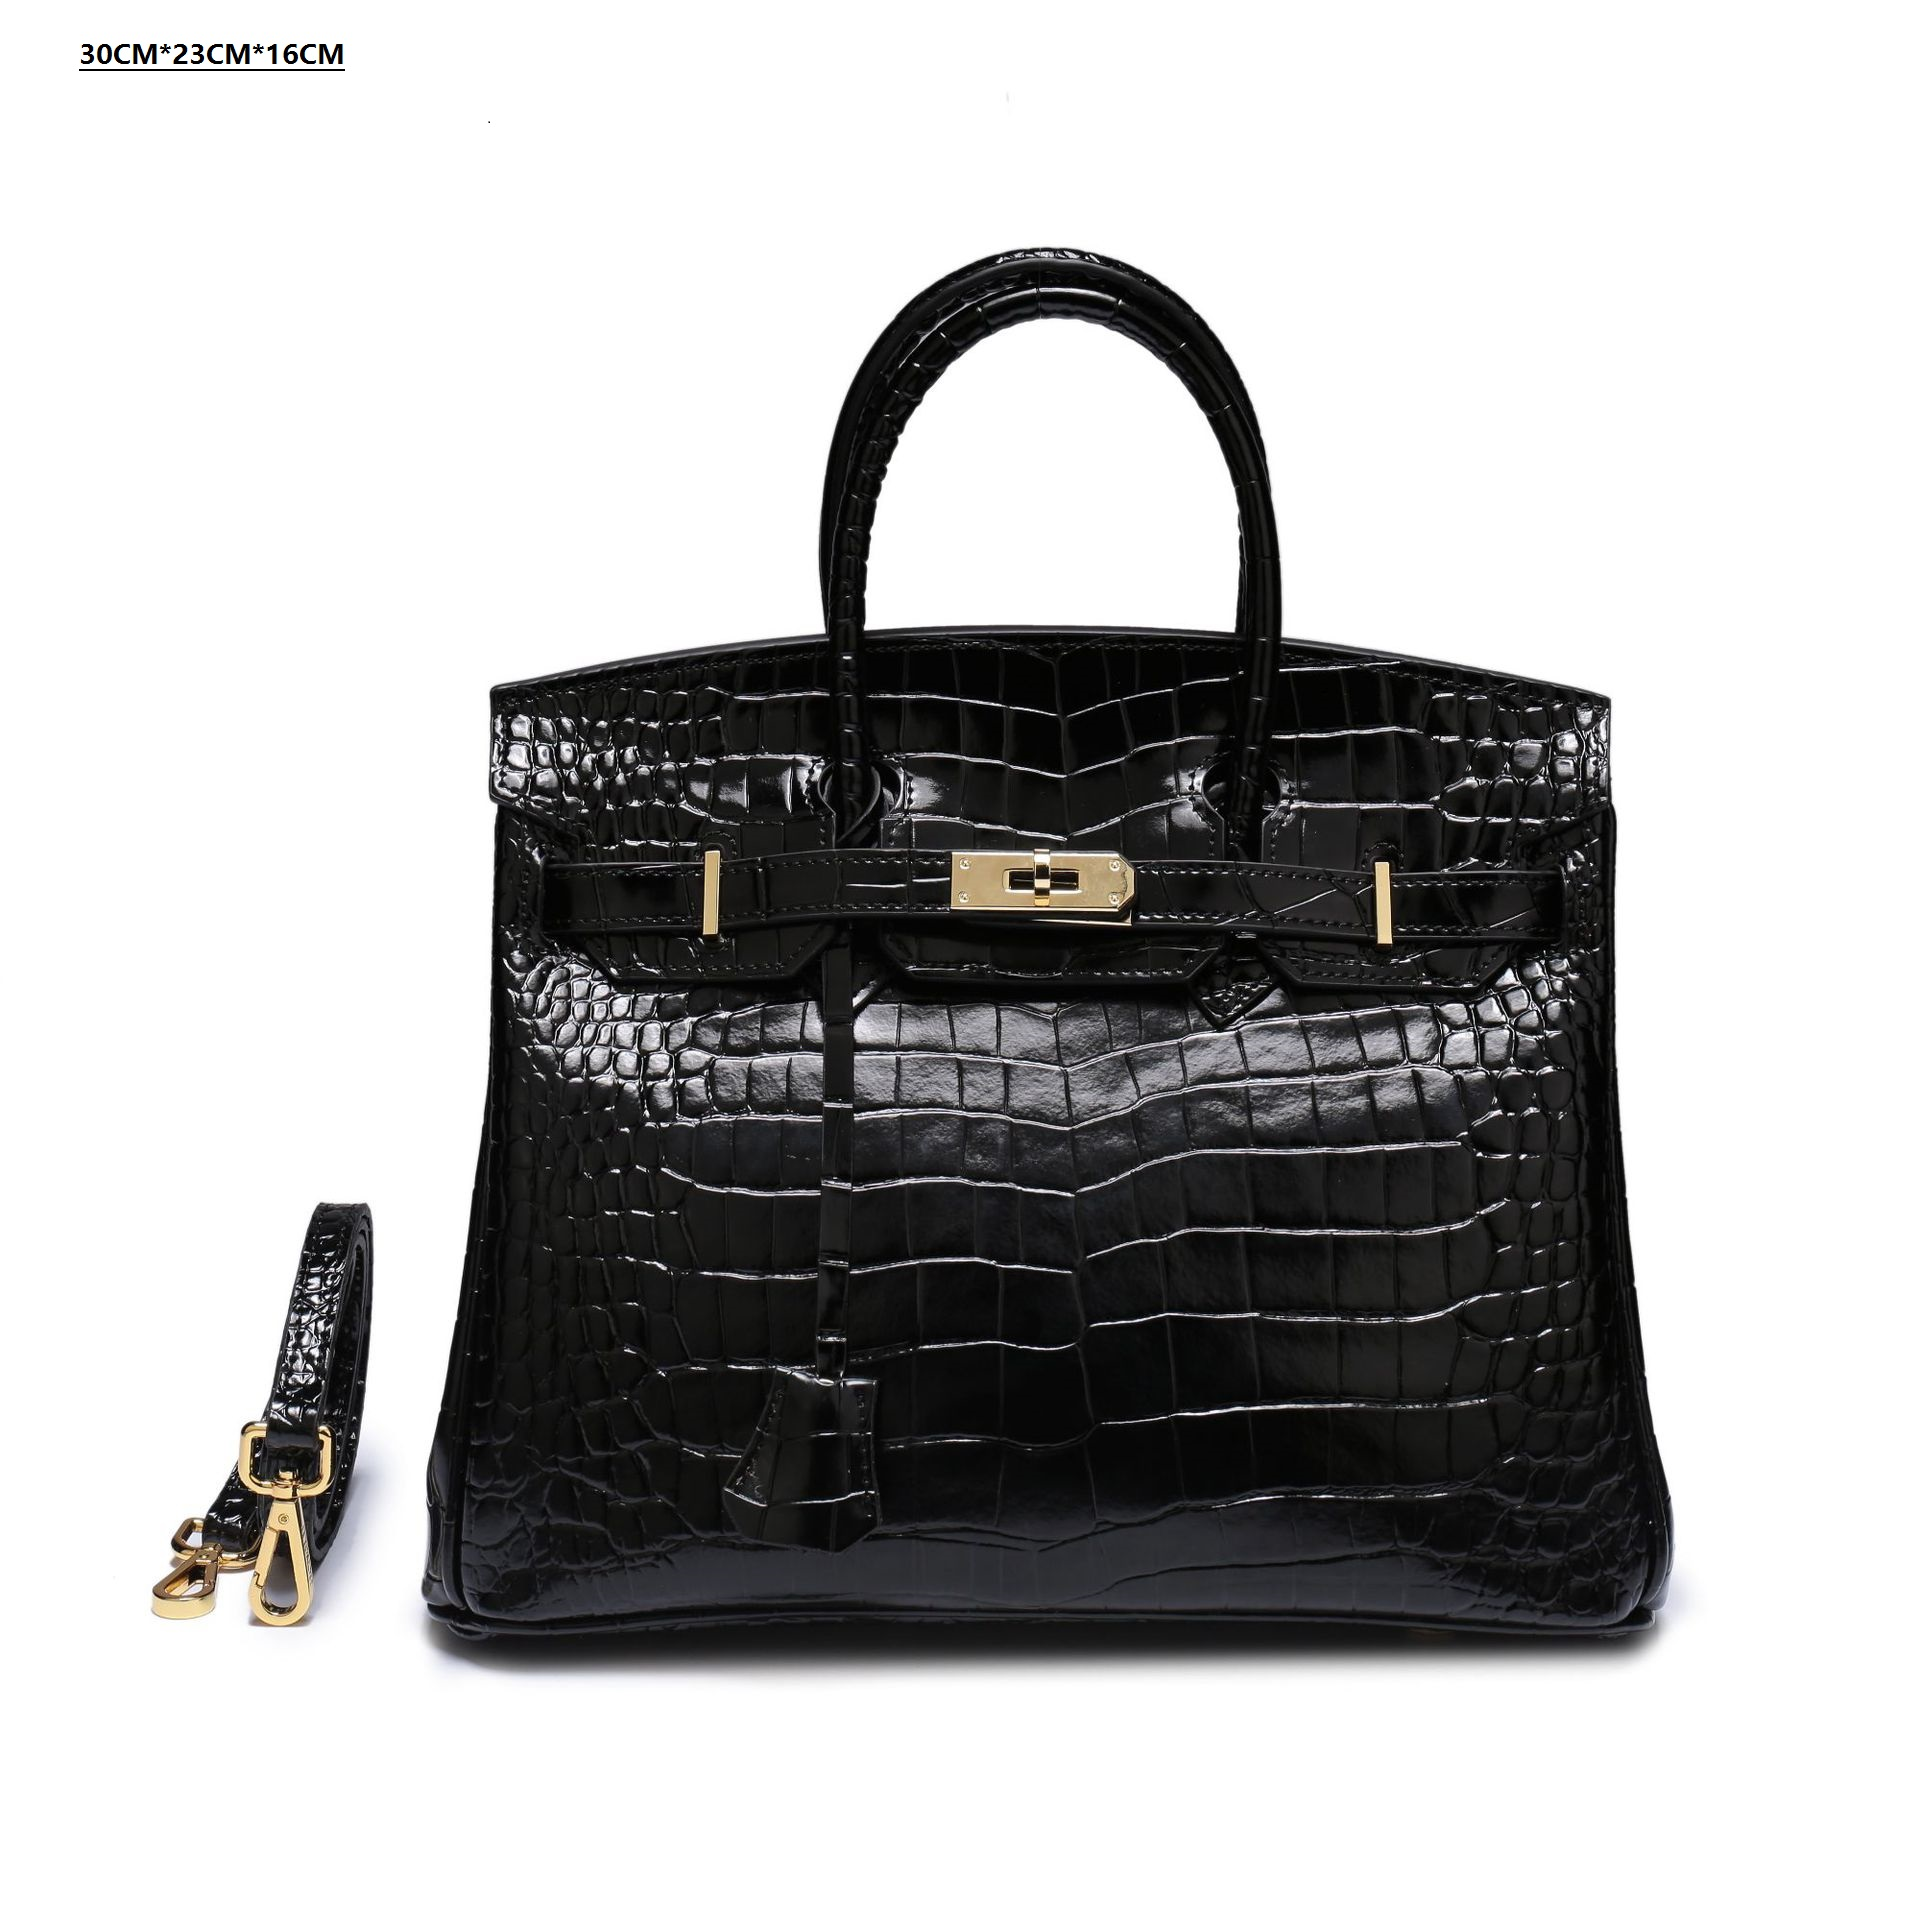 Best-selling new high-quality platinum bag fashion single-shoulder diagonal lady bag crocodile pattern leather Lady Bag HandbagBest-selling new high-quality platinum bag fashion single-shoulder diagonal lady bag crocodile pattern leather Lady Bag Handbag